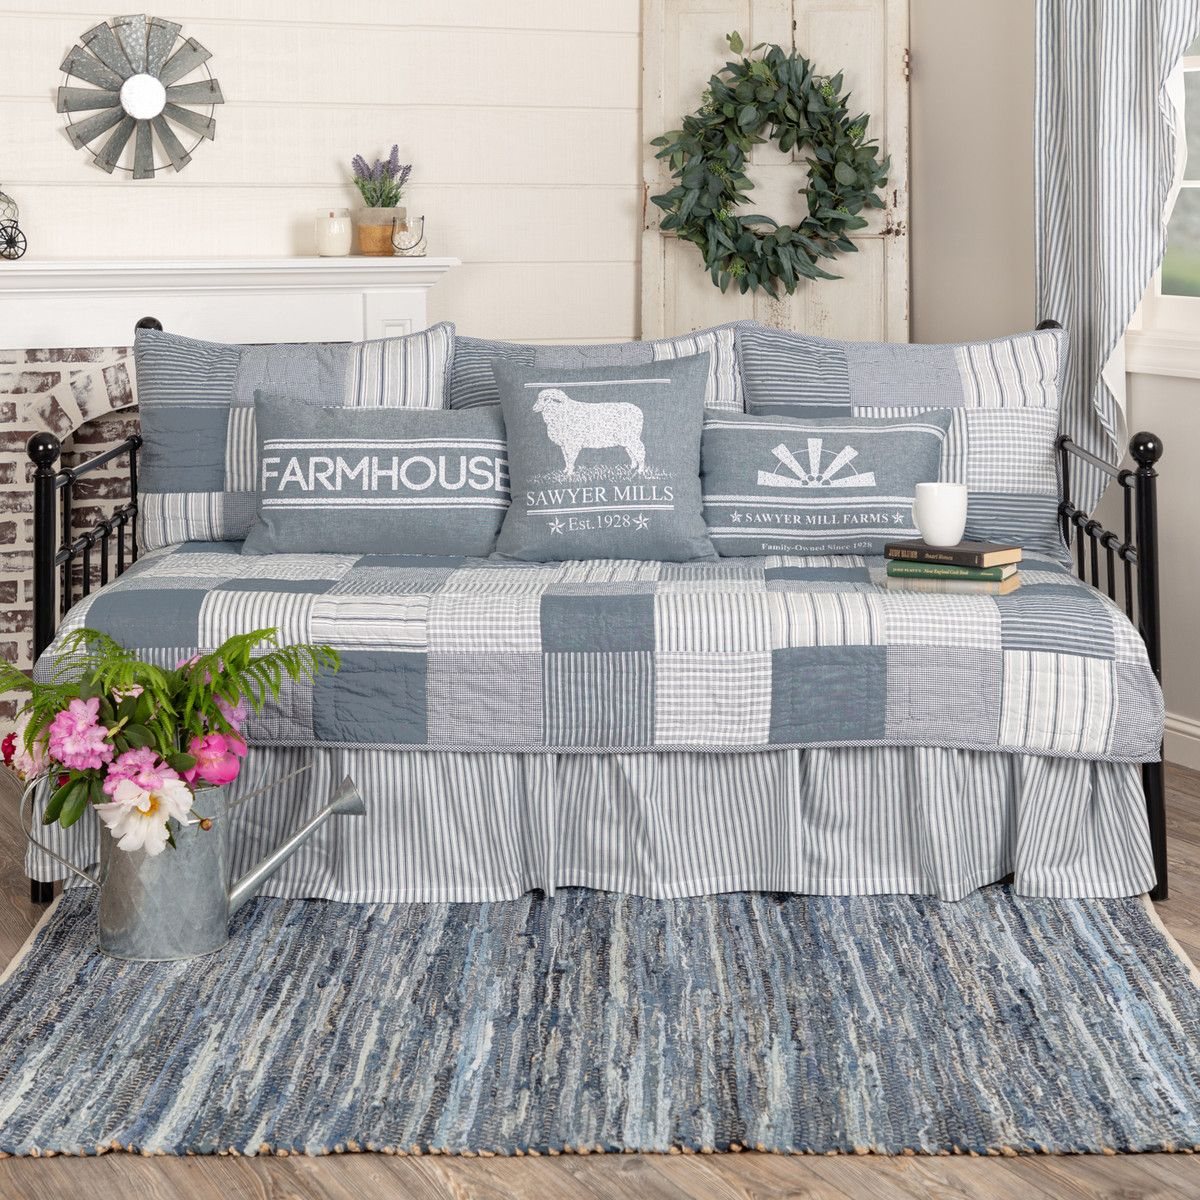 Pin by Jam Discount Home Decor on Farmhouse Quilts Bedding